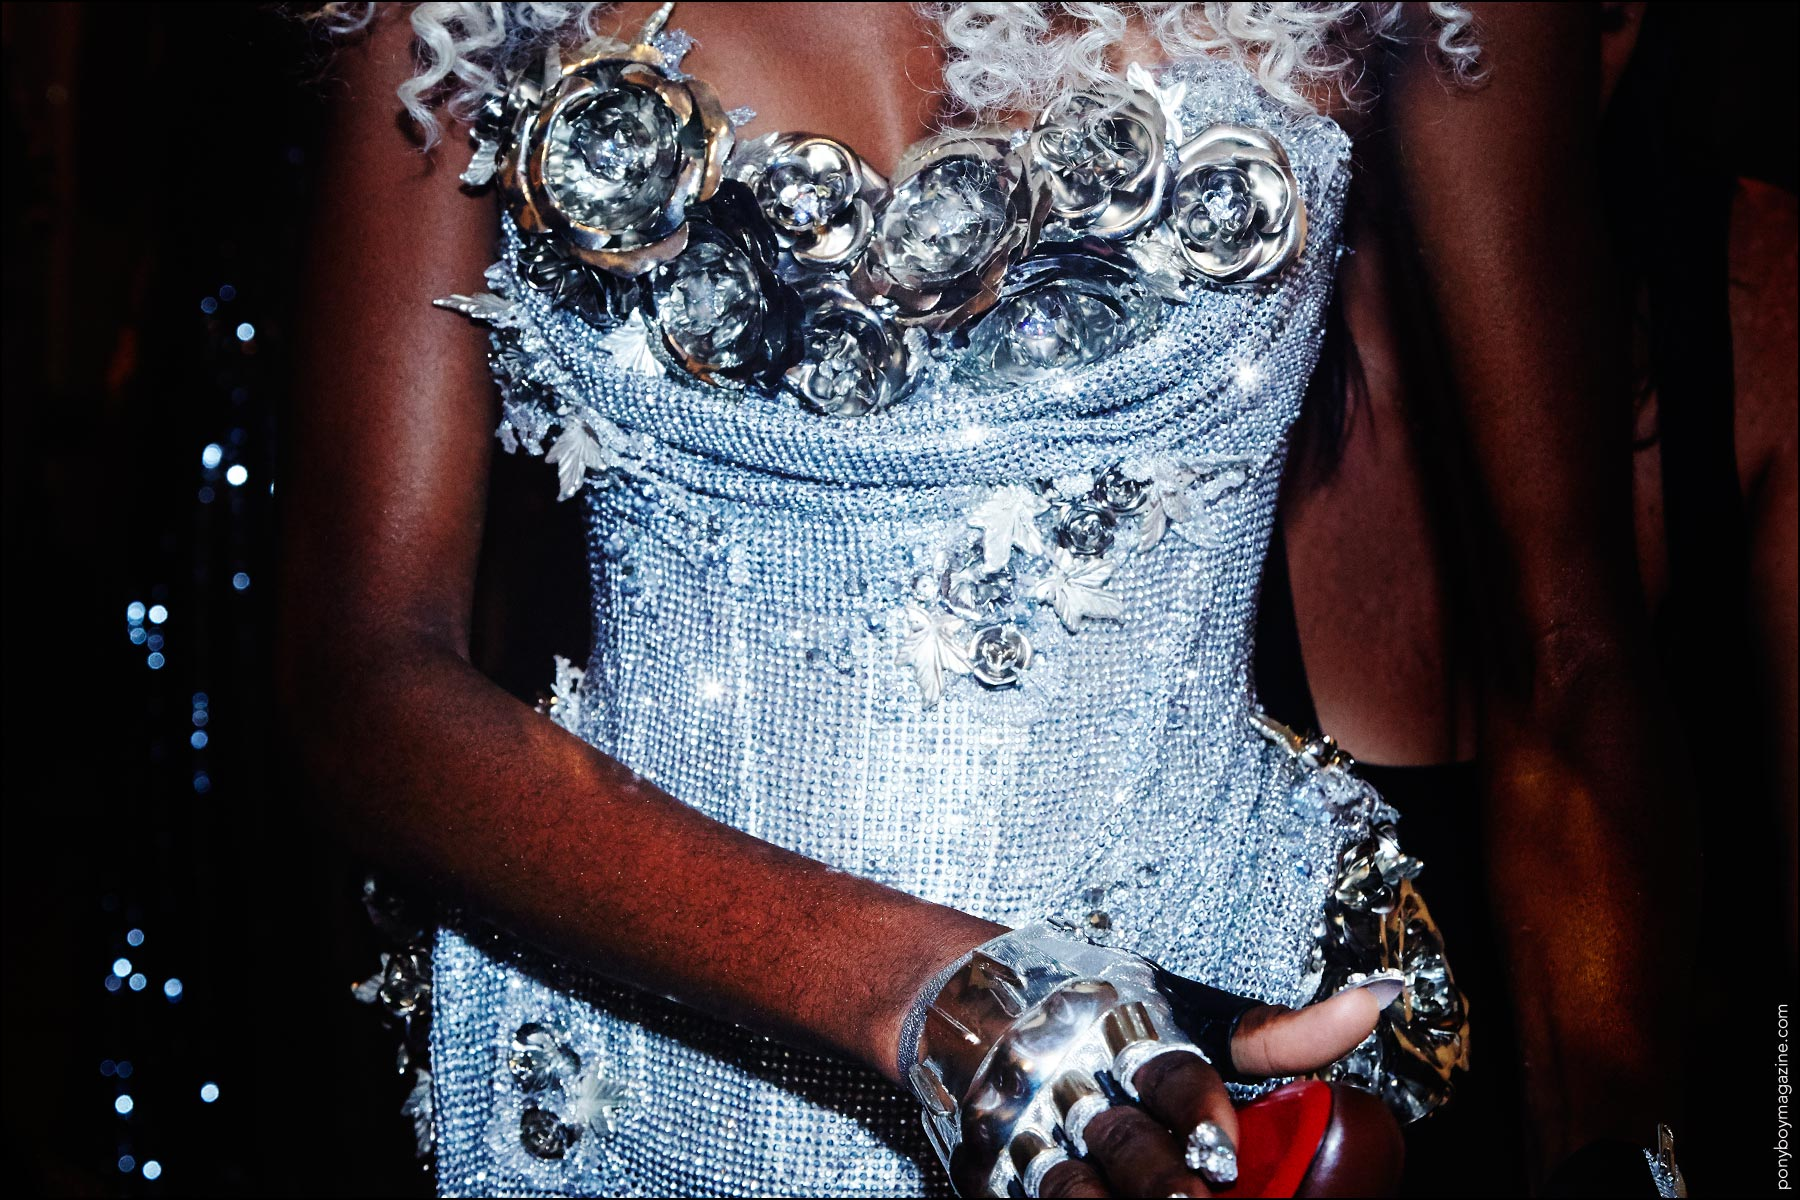 Detail shot of a model in a corset at the Blonds Spring/Summer 2017 show during New York Fashion Week. Photography by Alexander Thompson for Ponyboy magazine.